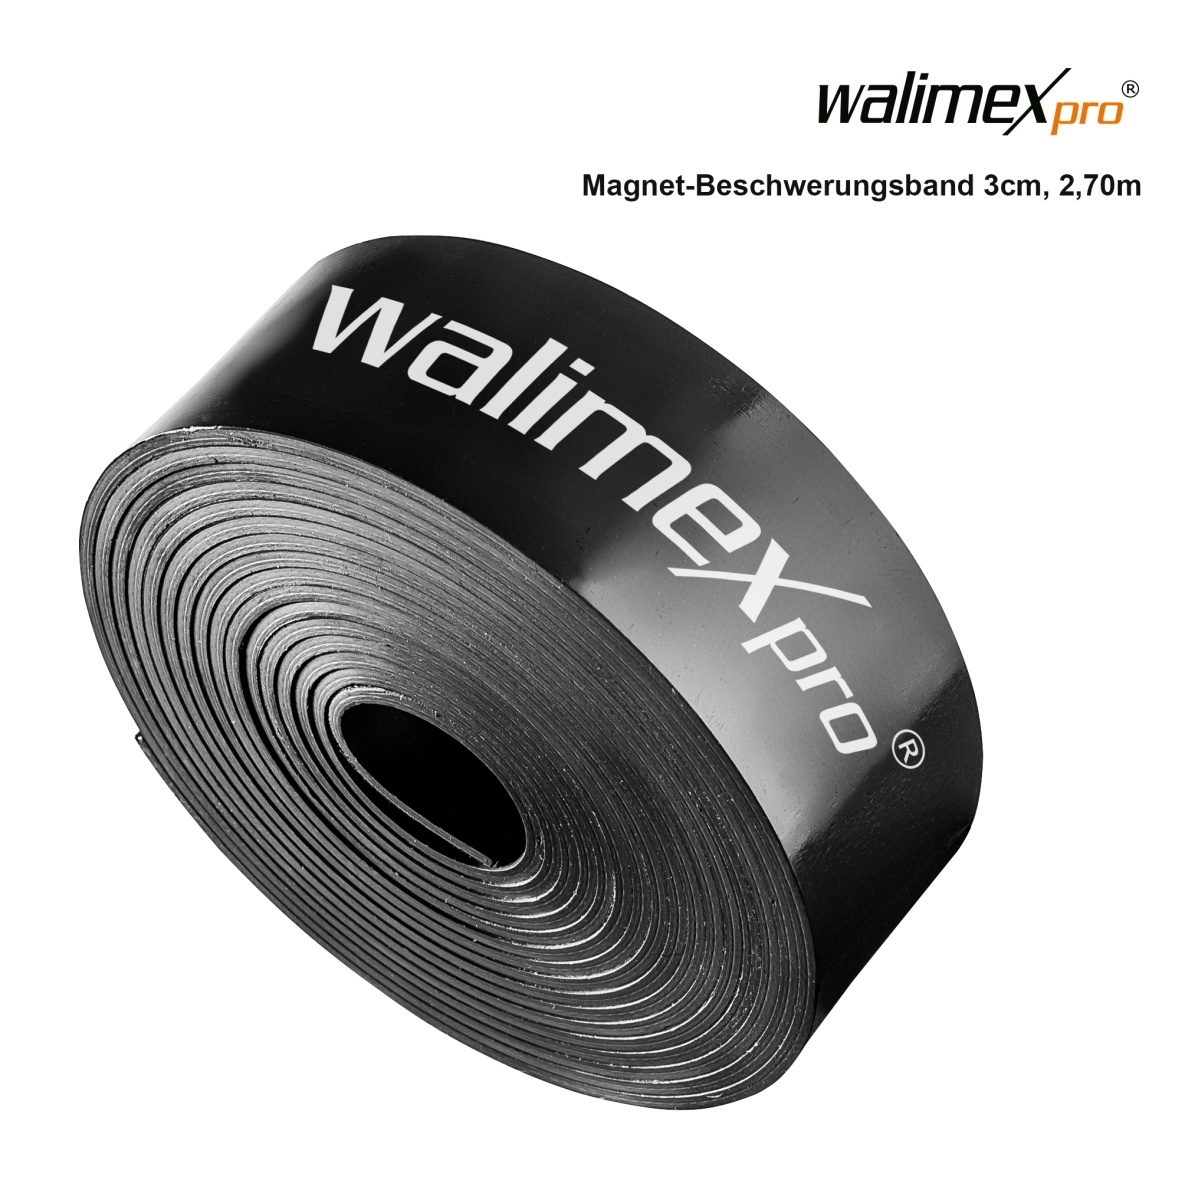 Walimex pro magnetic weighting tape 3cm, 2,7m